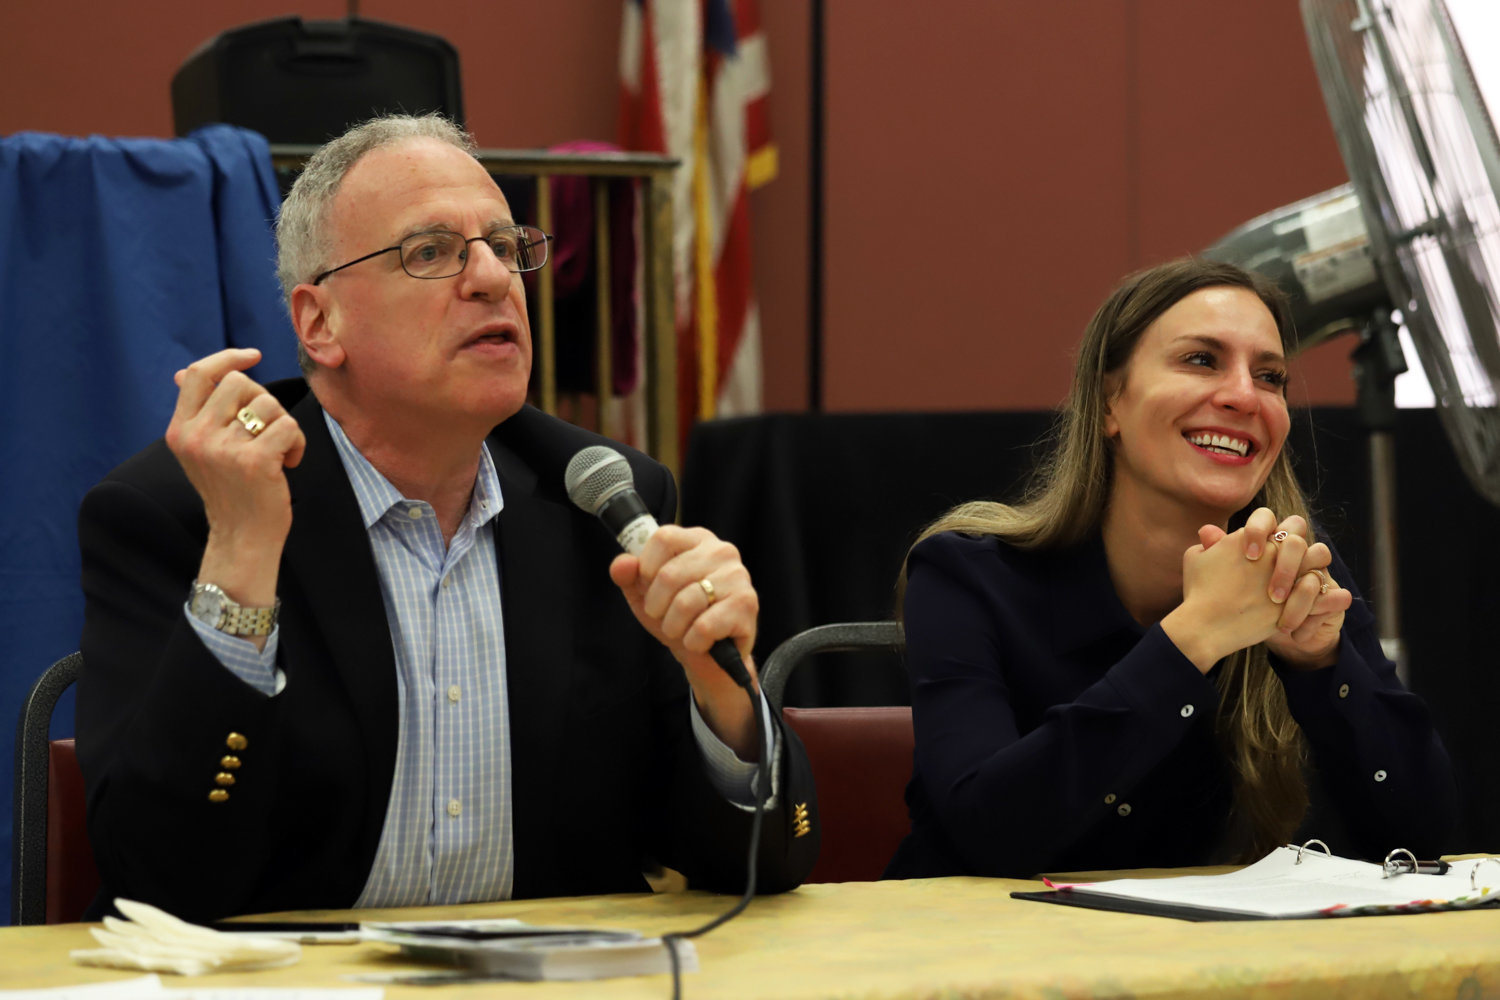 Both Assemblyman Jeffrey Dinowitz and state Sen. Alessandra Biaggi are working on legislation that will allow people to continue voting, even during coronavirus crisis concerns.